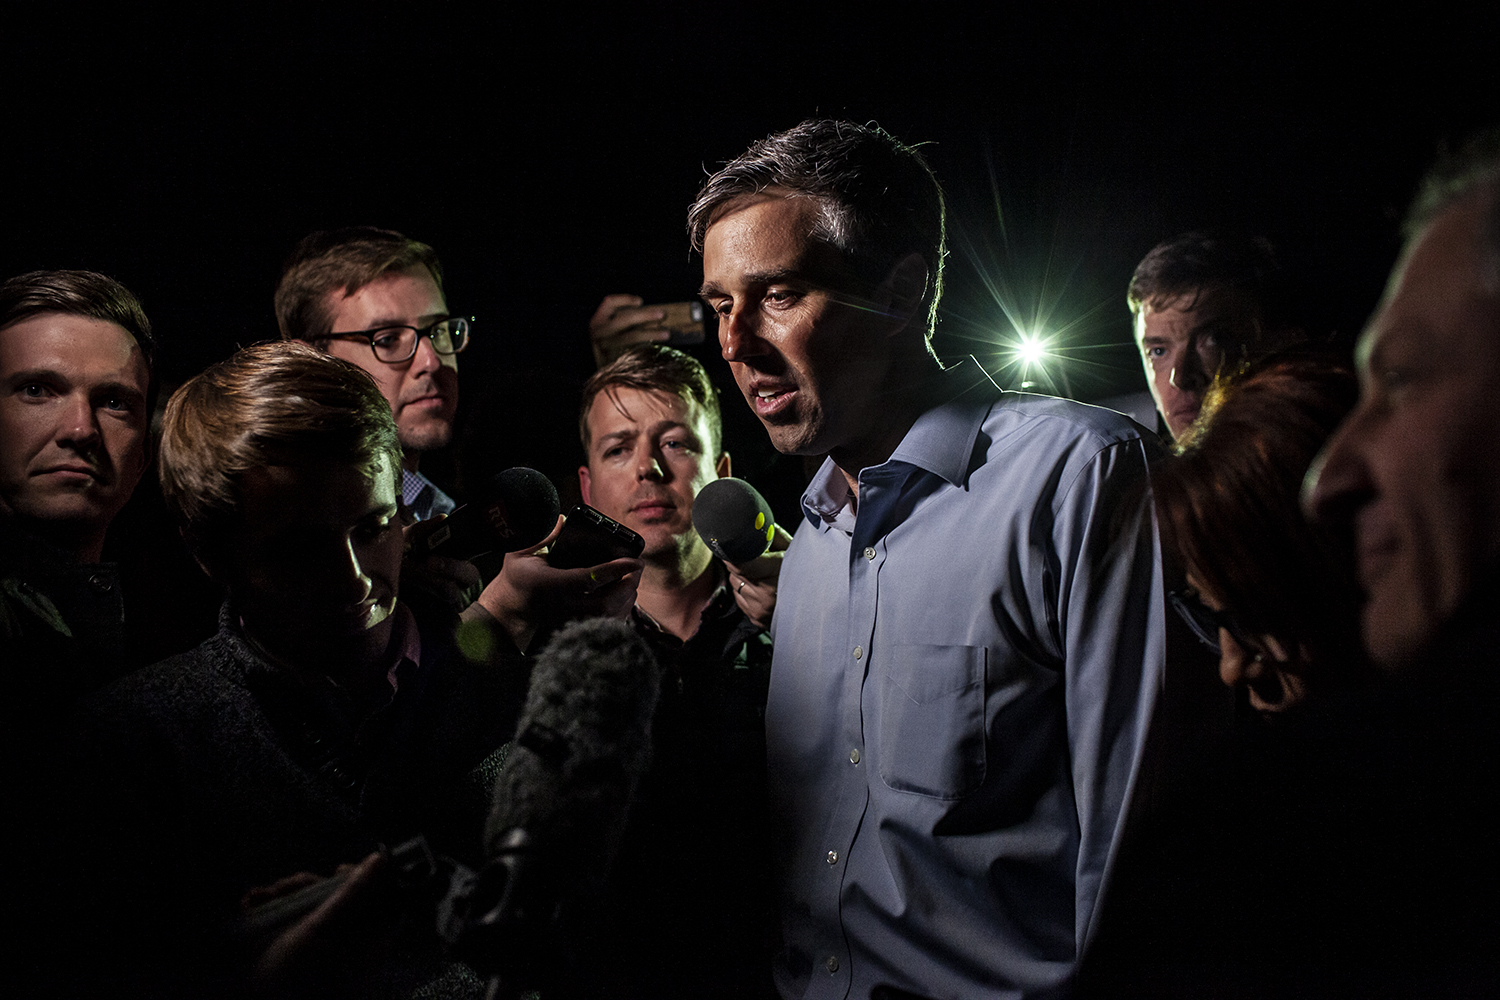 Democratic presidential candidate Beto O'Rourke speaks with members of the press after speaking at the home of John Murphy in Dubuque, Iowa on Sunday, March 16, 2019.